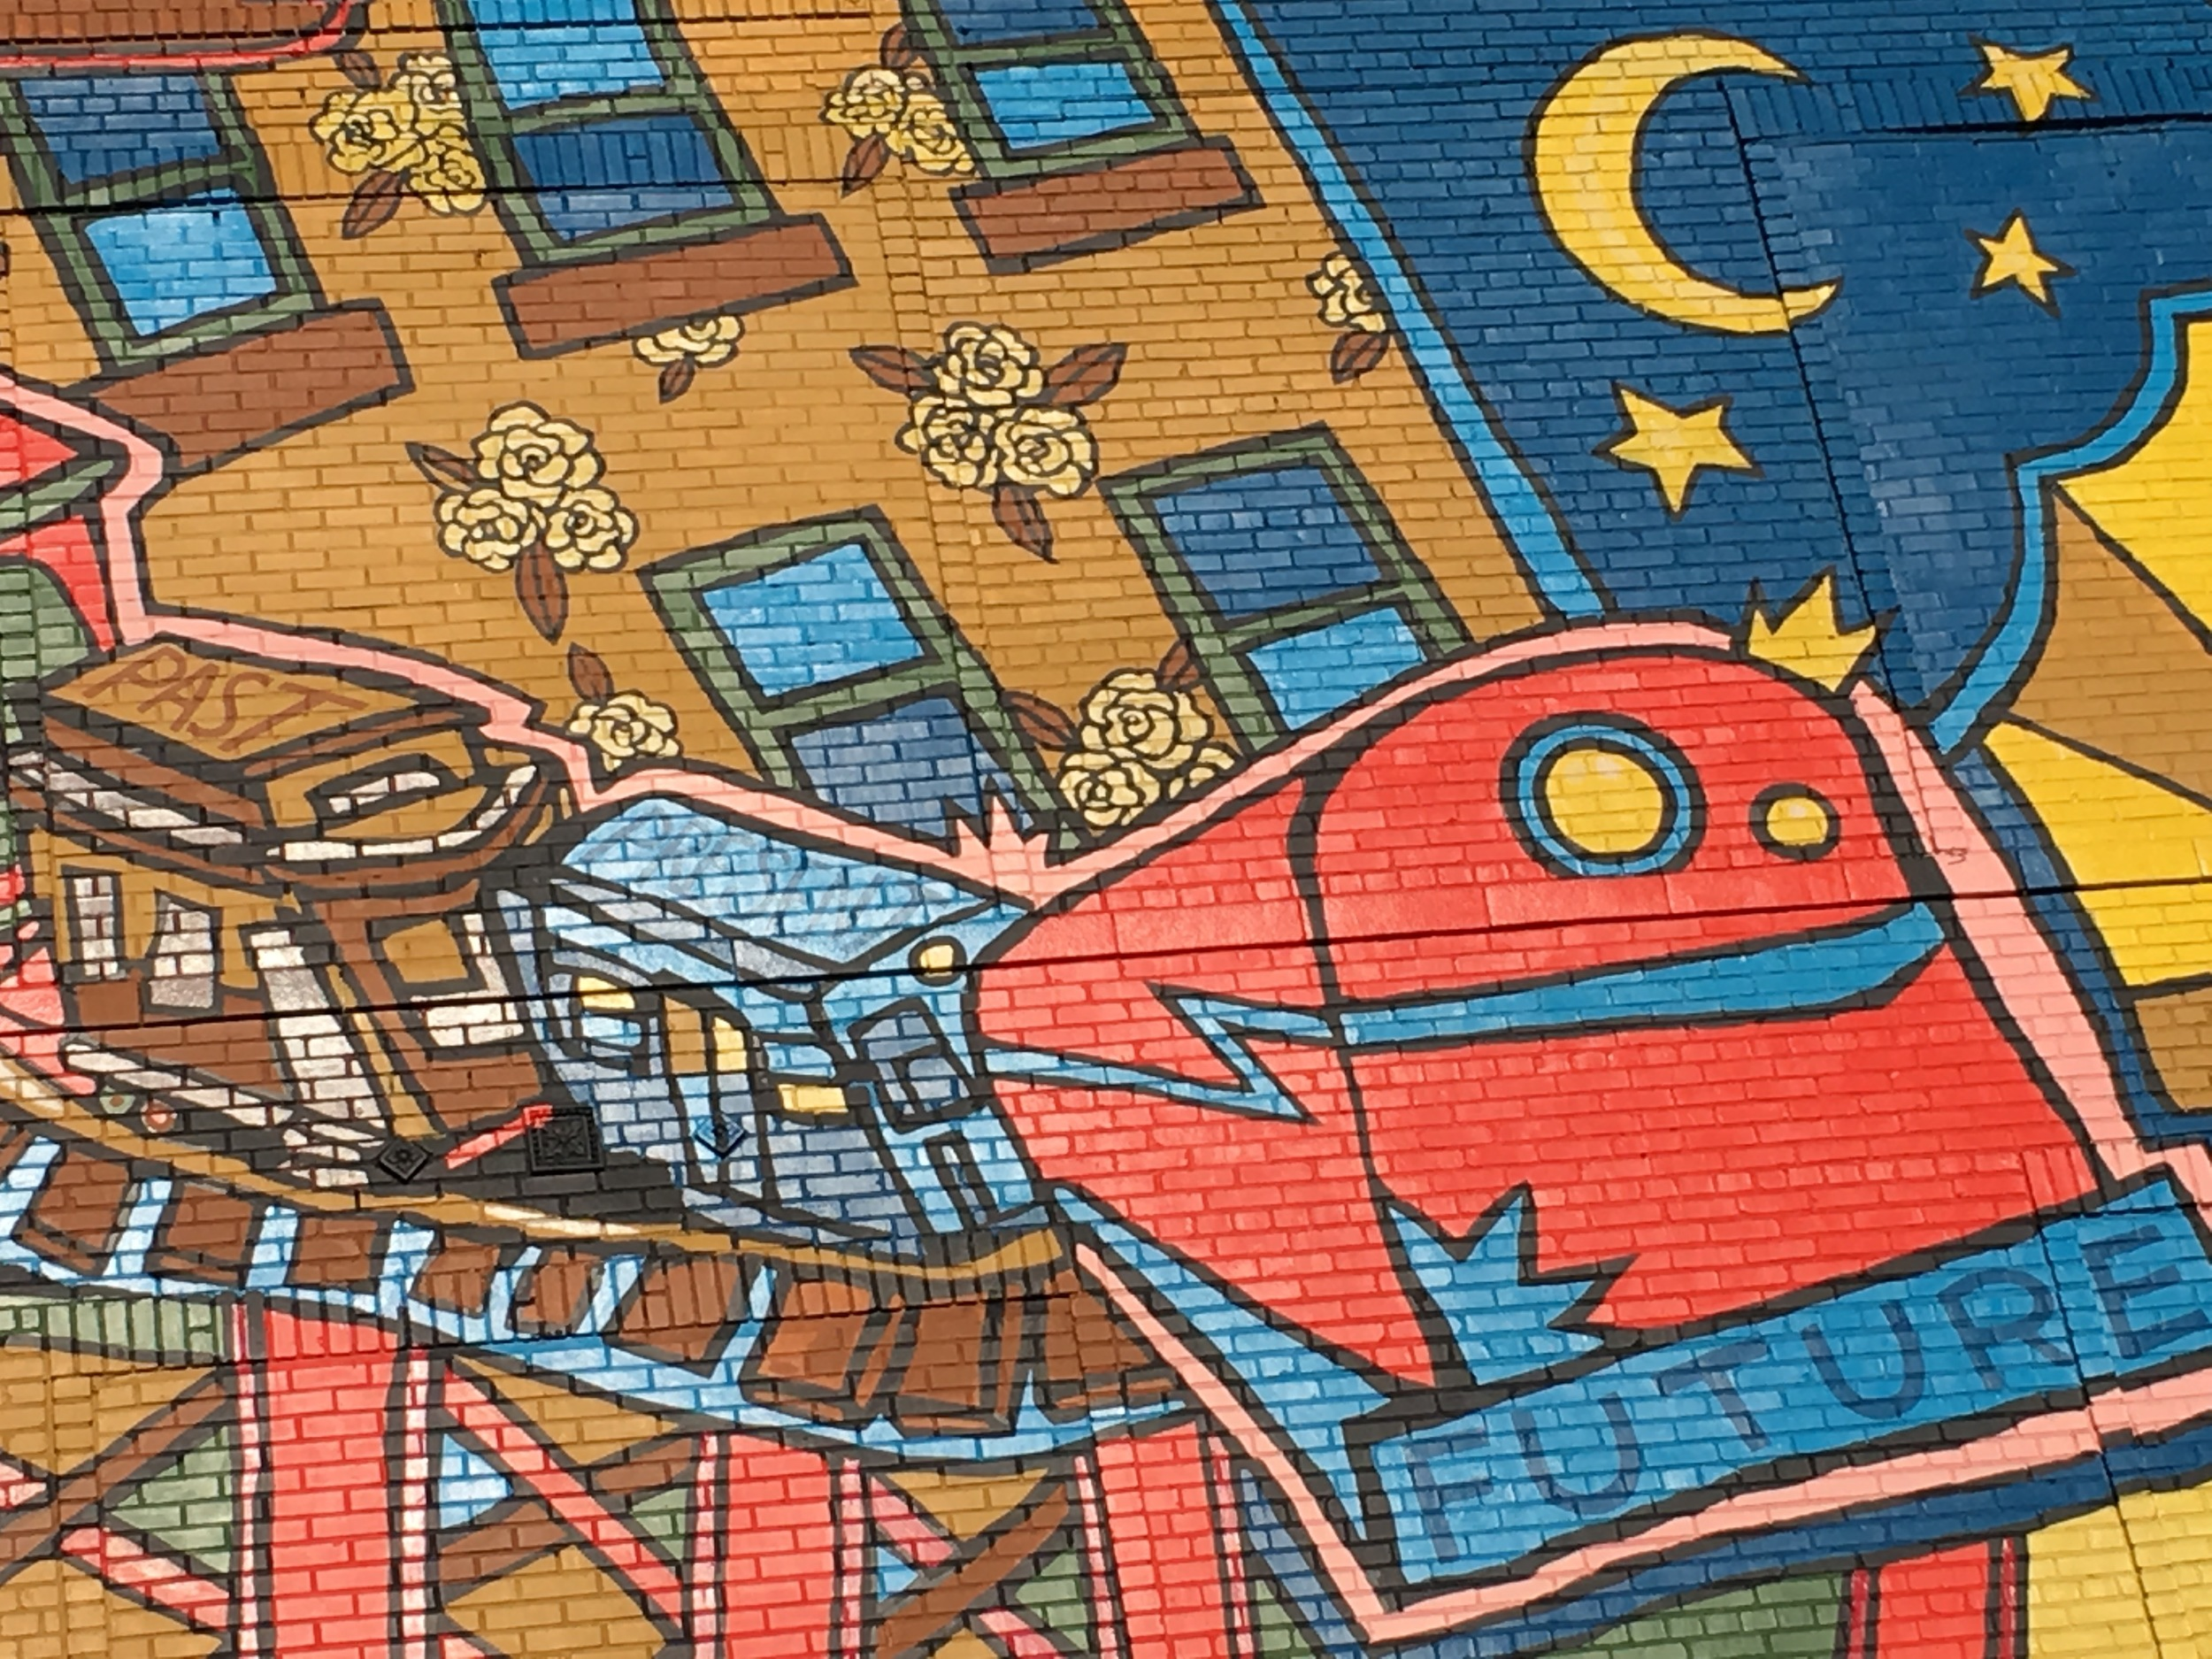 This close up reveals details of the image topic, and is contained within a frame chosen by the image creator. Out of all the features of this mural she chose to have us look at this train of change. We see the color of the past, the namelessness of the present, and the bright, streamlined presentation of the future.